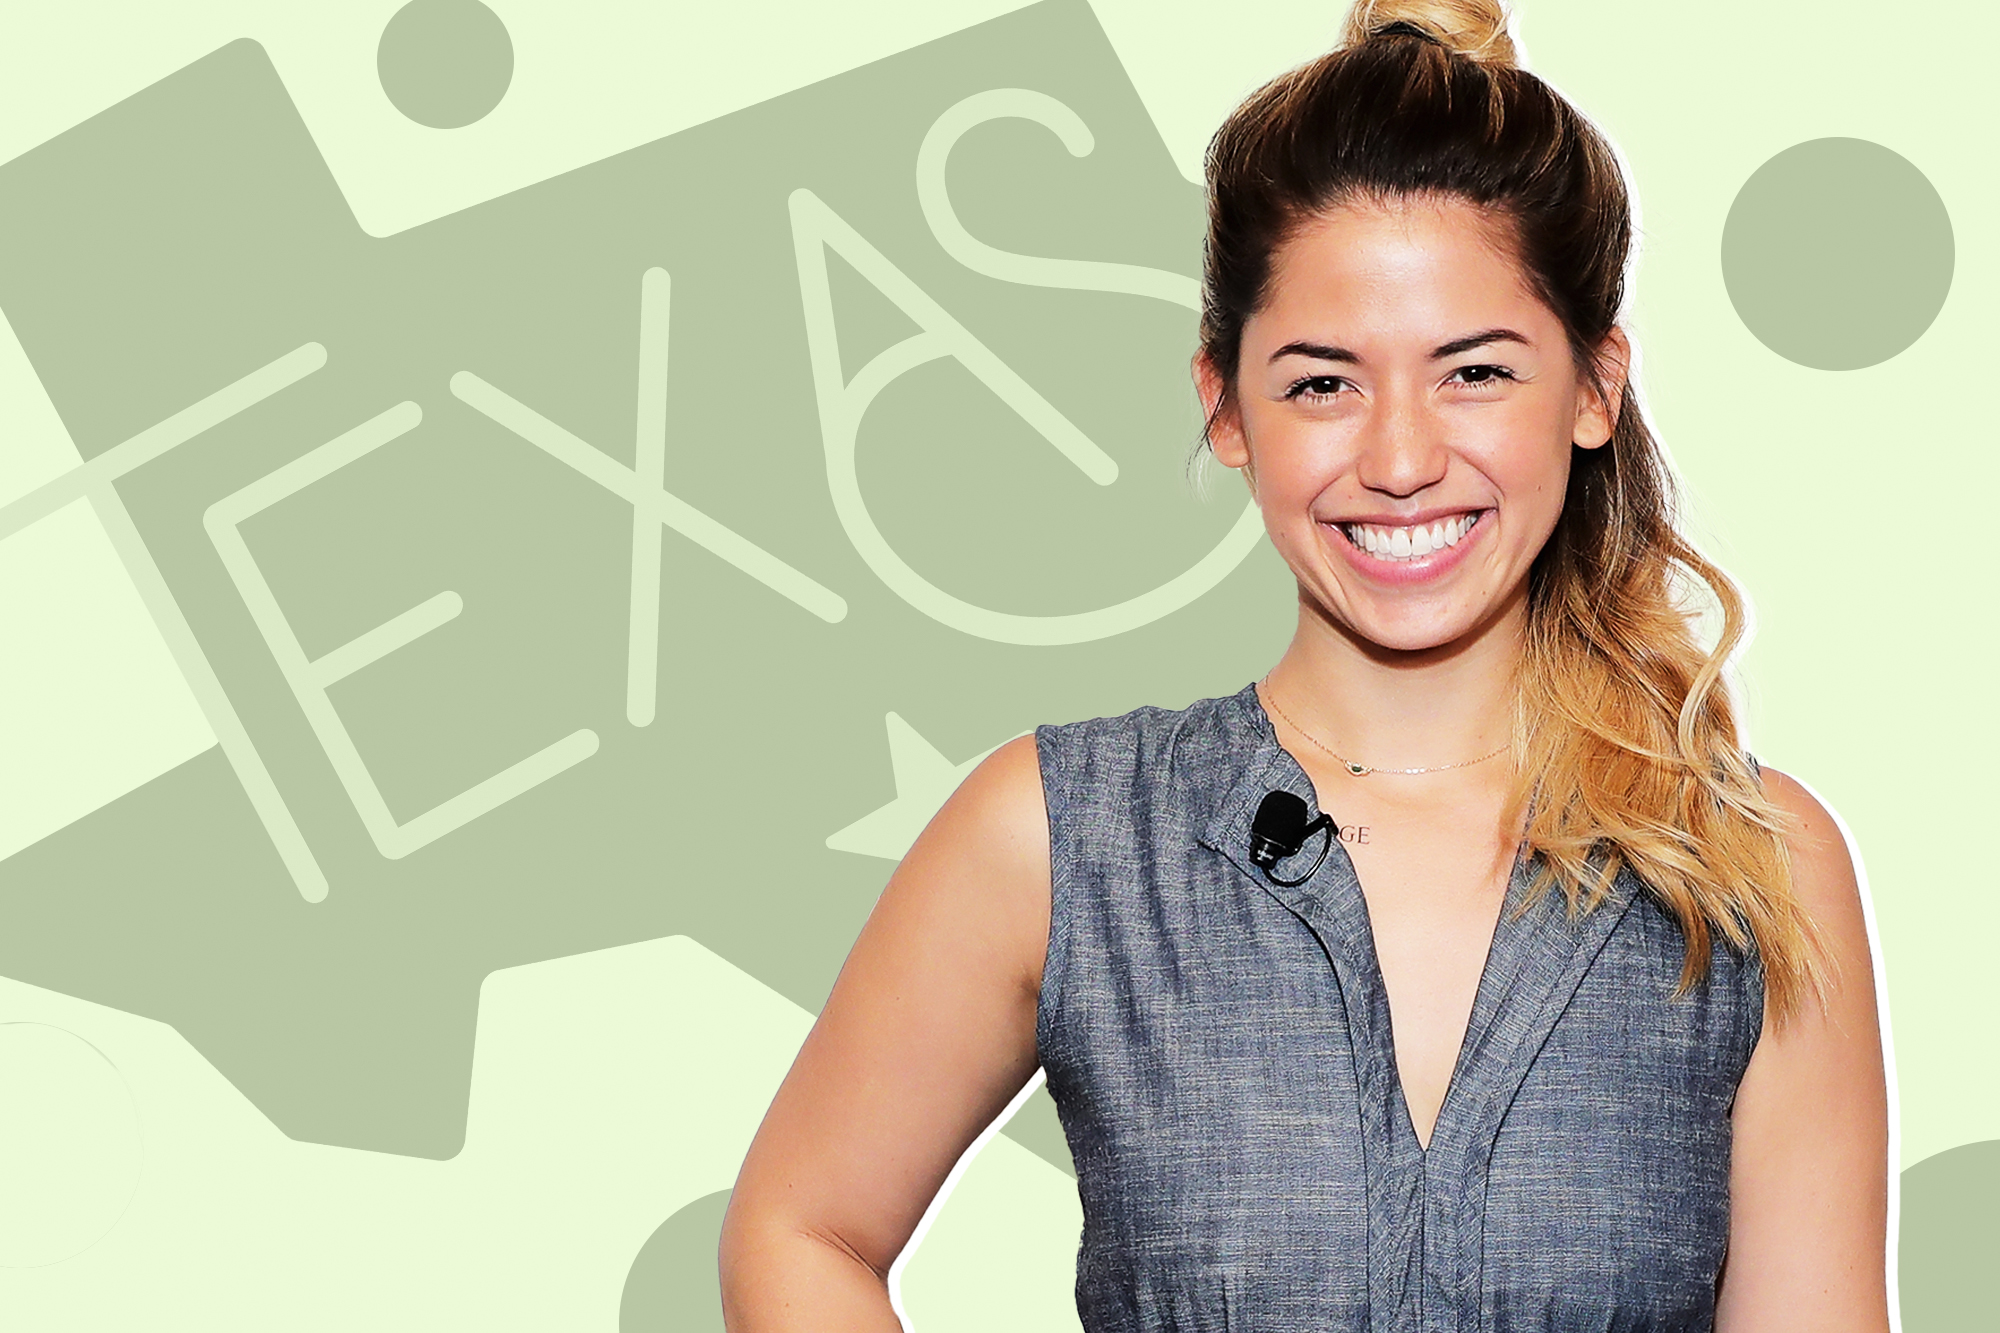 Molly Yeh on a designed background that includes the shape of the state Texas